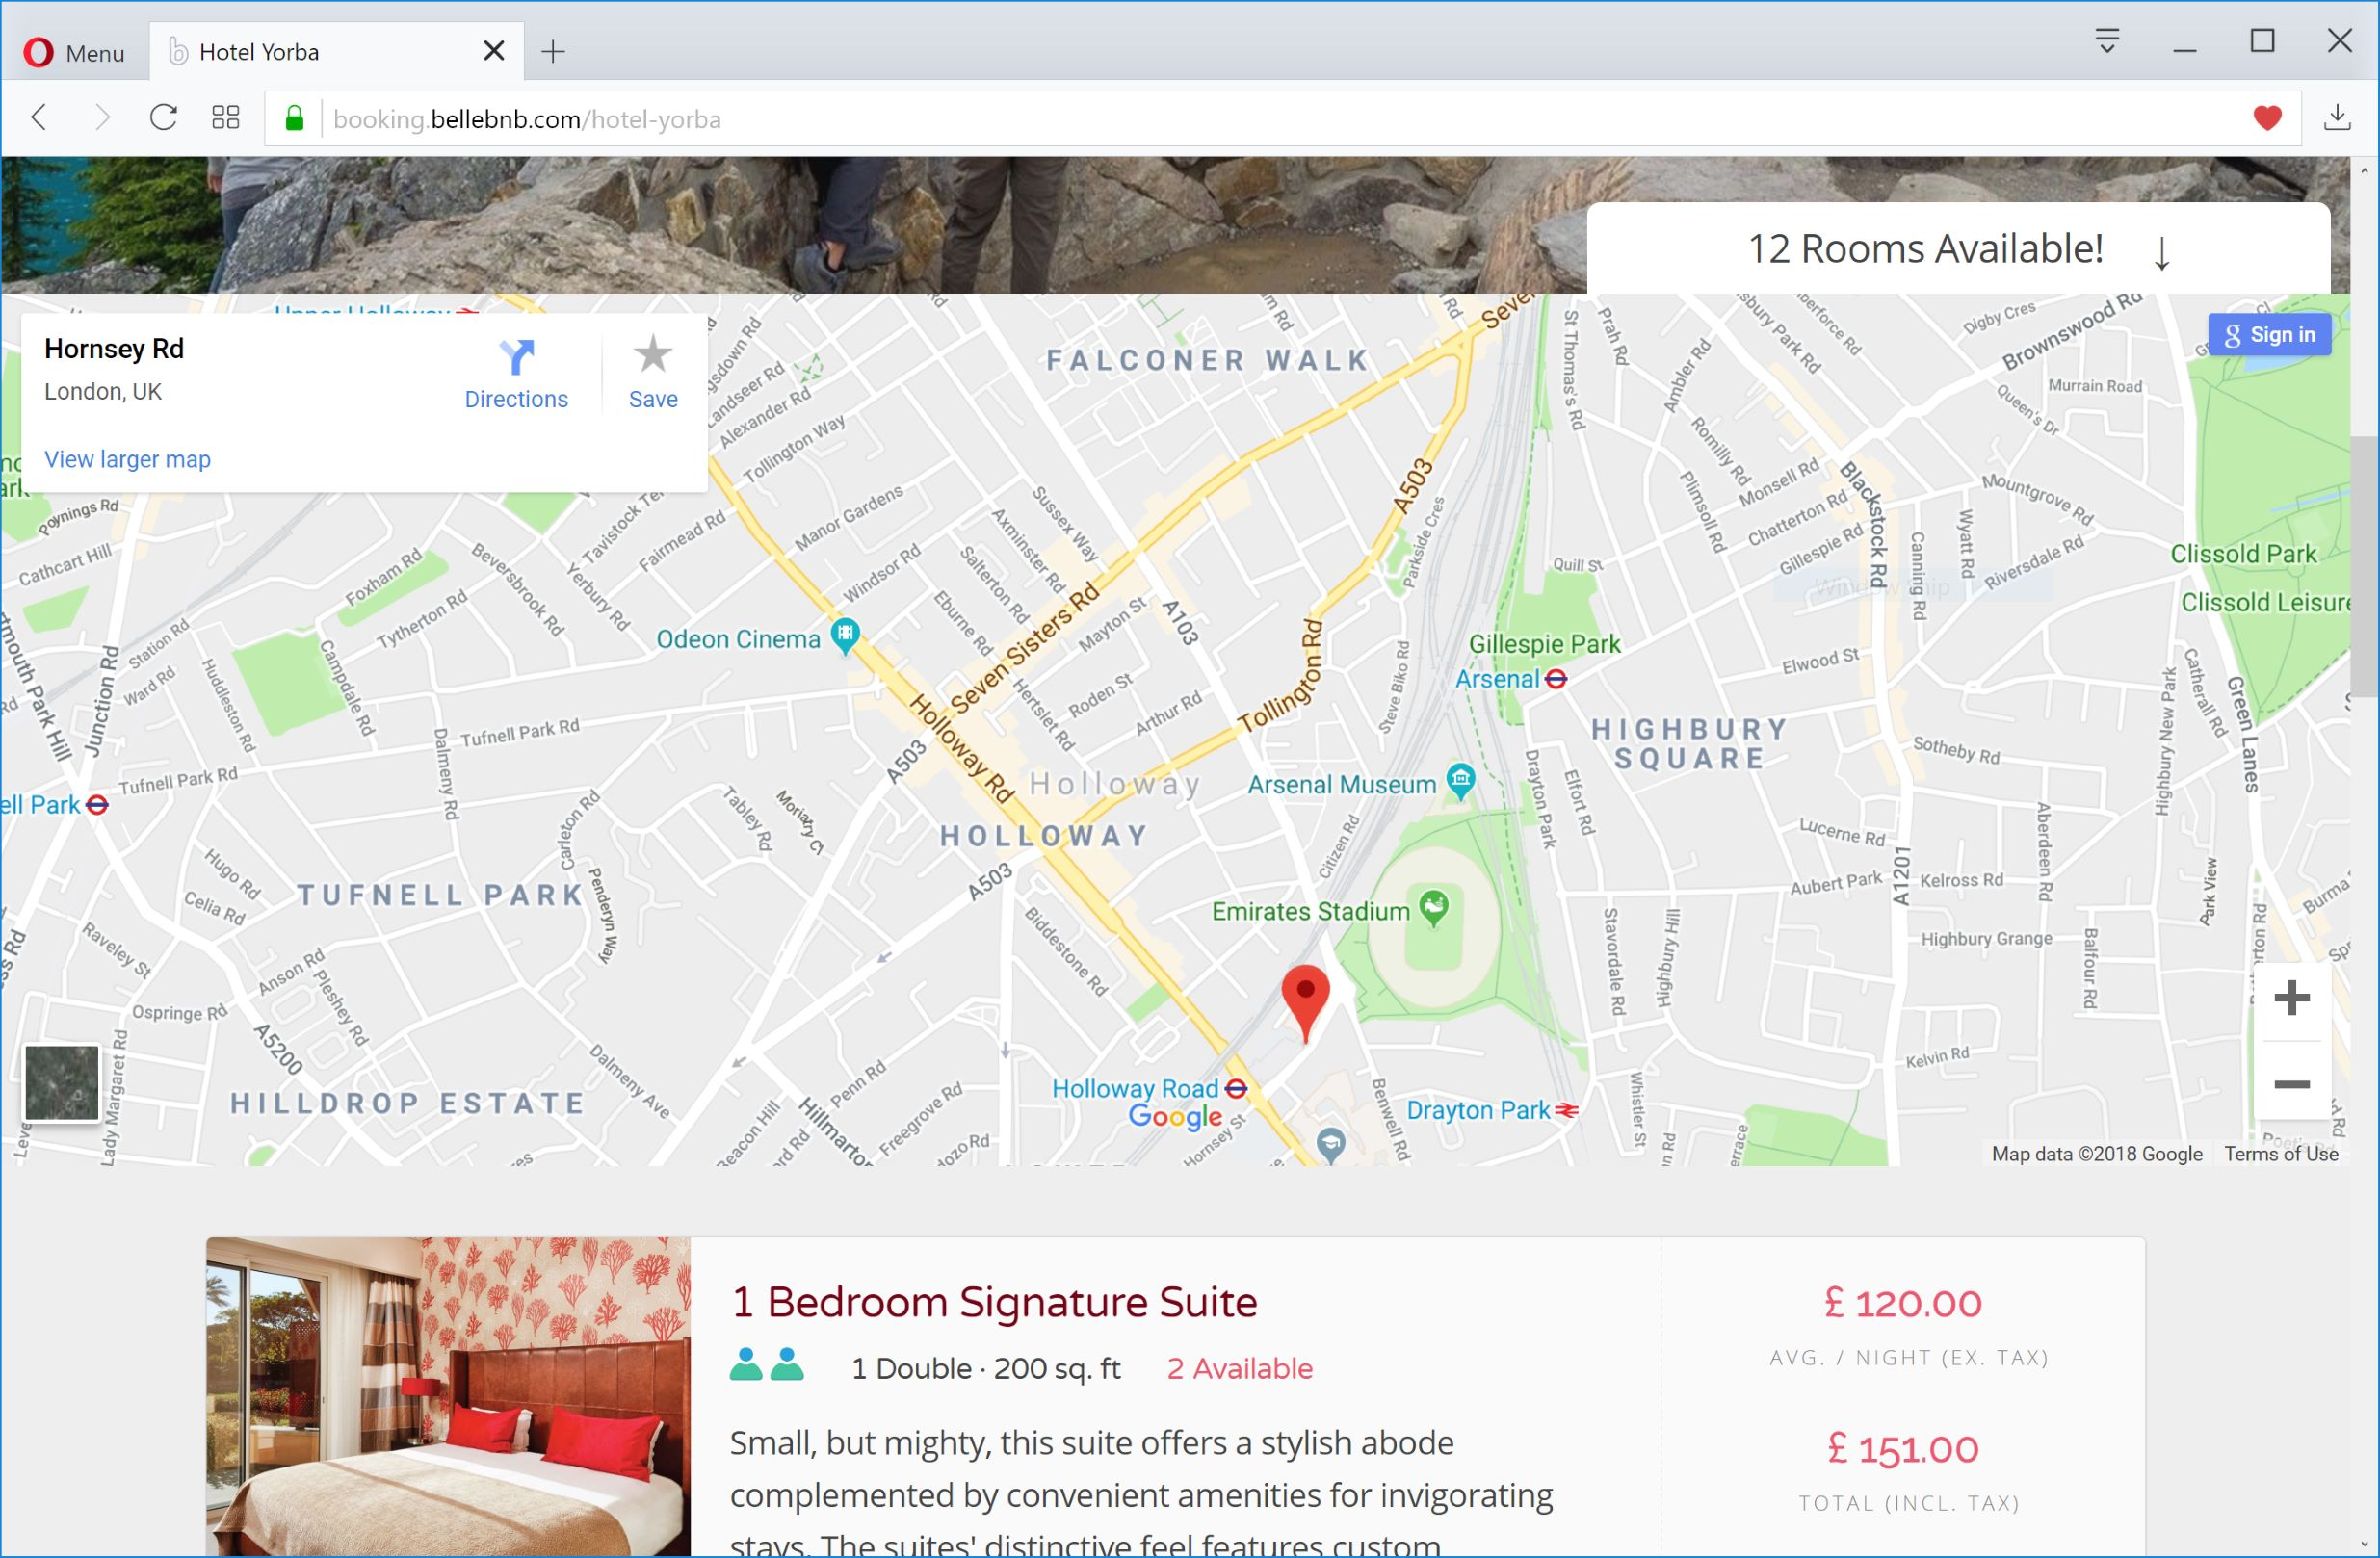 Hotel PMS Software a Google Map added to your Booking Engine ties everything together quite nicely. Not only that, it makes it easier for your guests to find you after they book, and even helps you sell your room during the booking process by highlighting attractions available in and around your hotel.